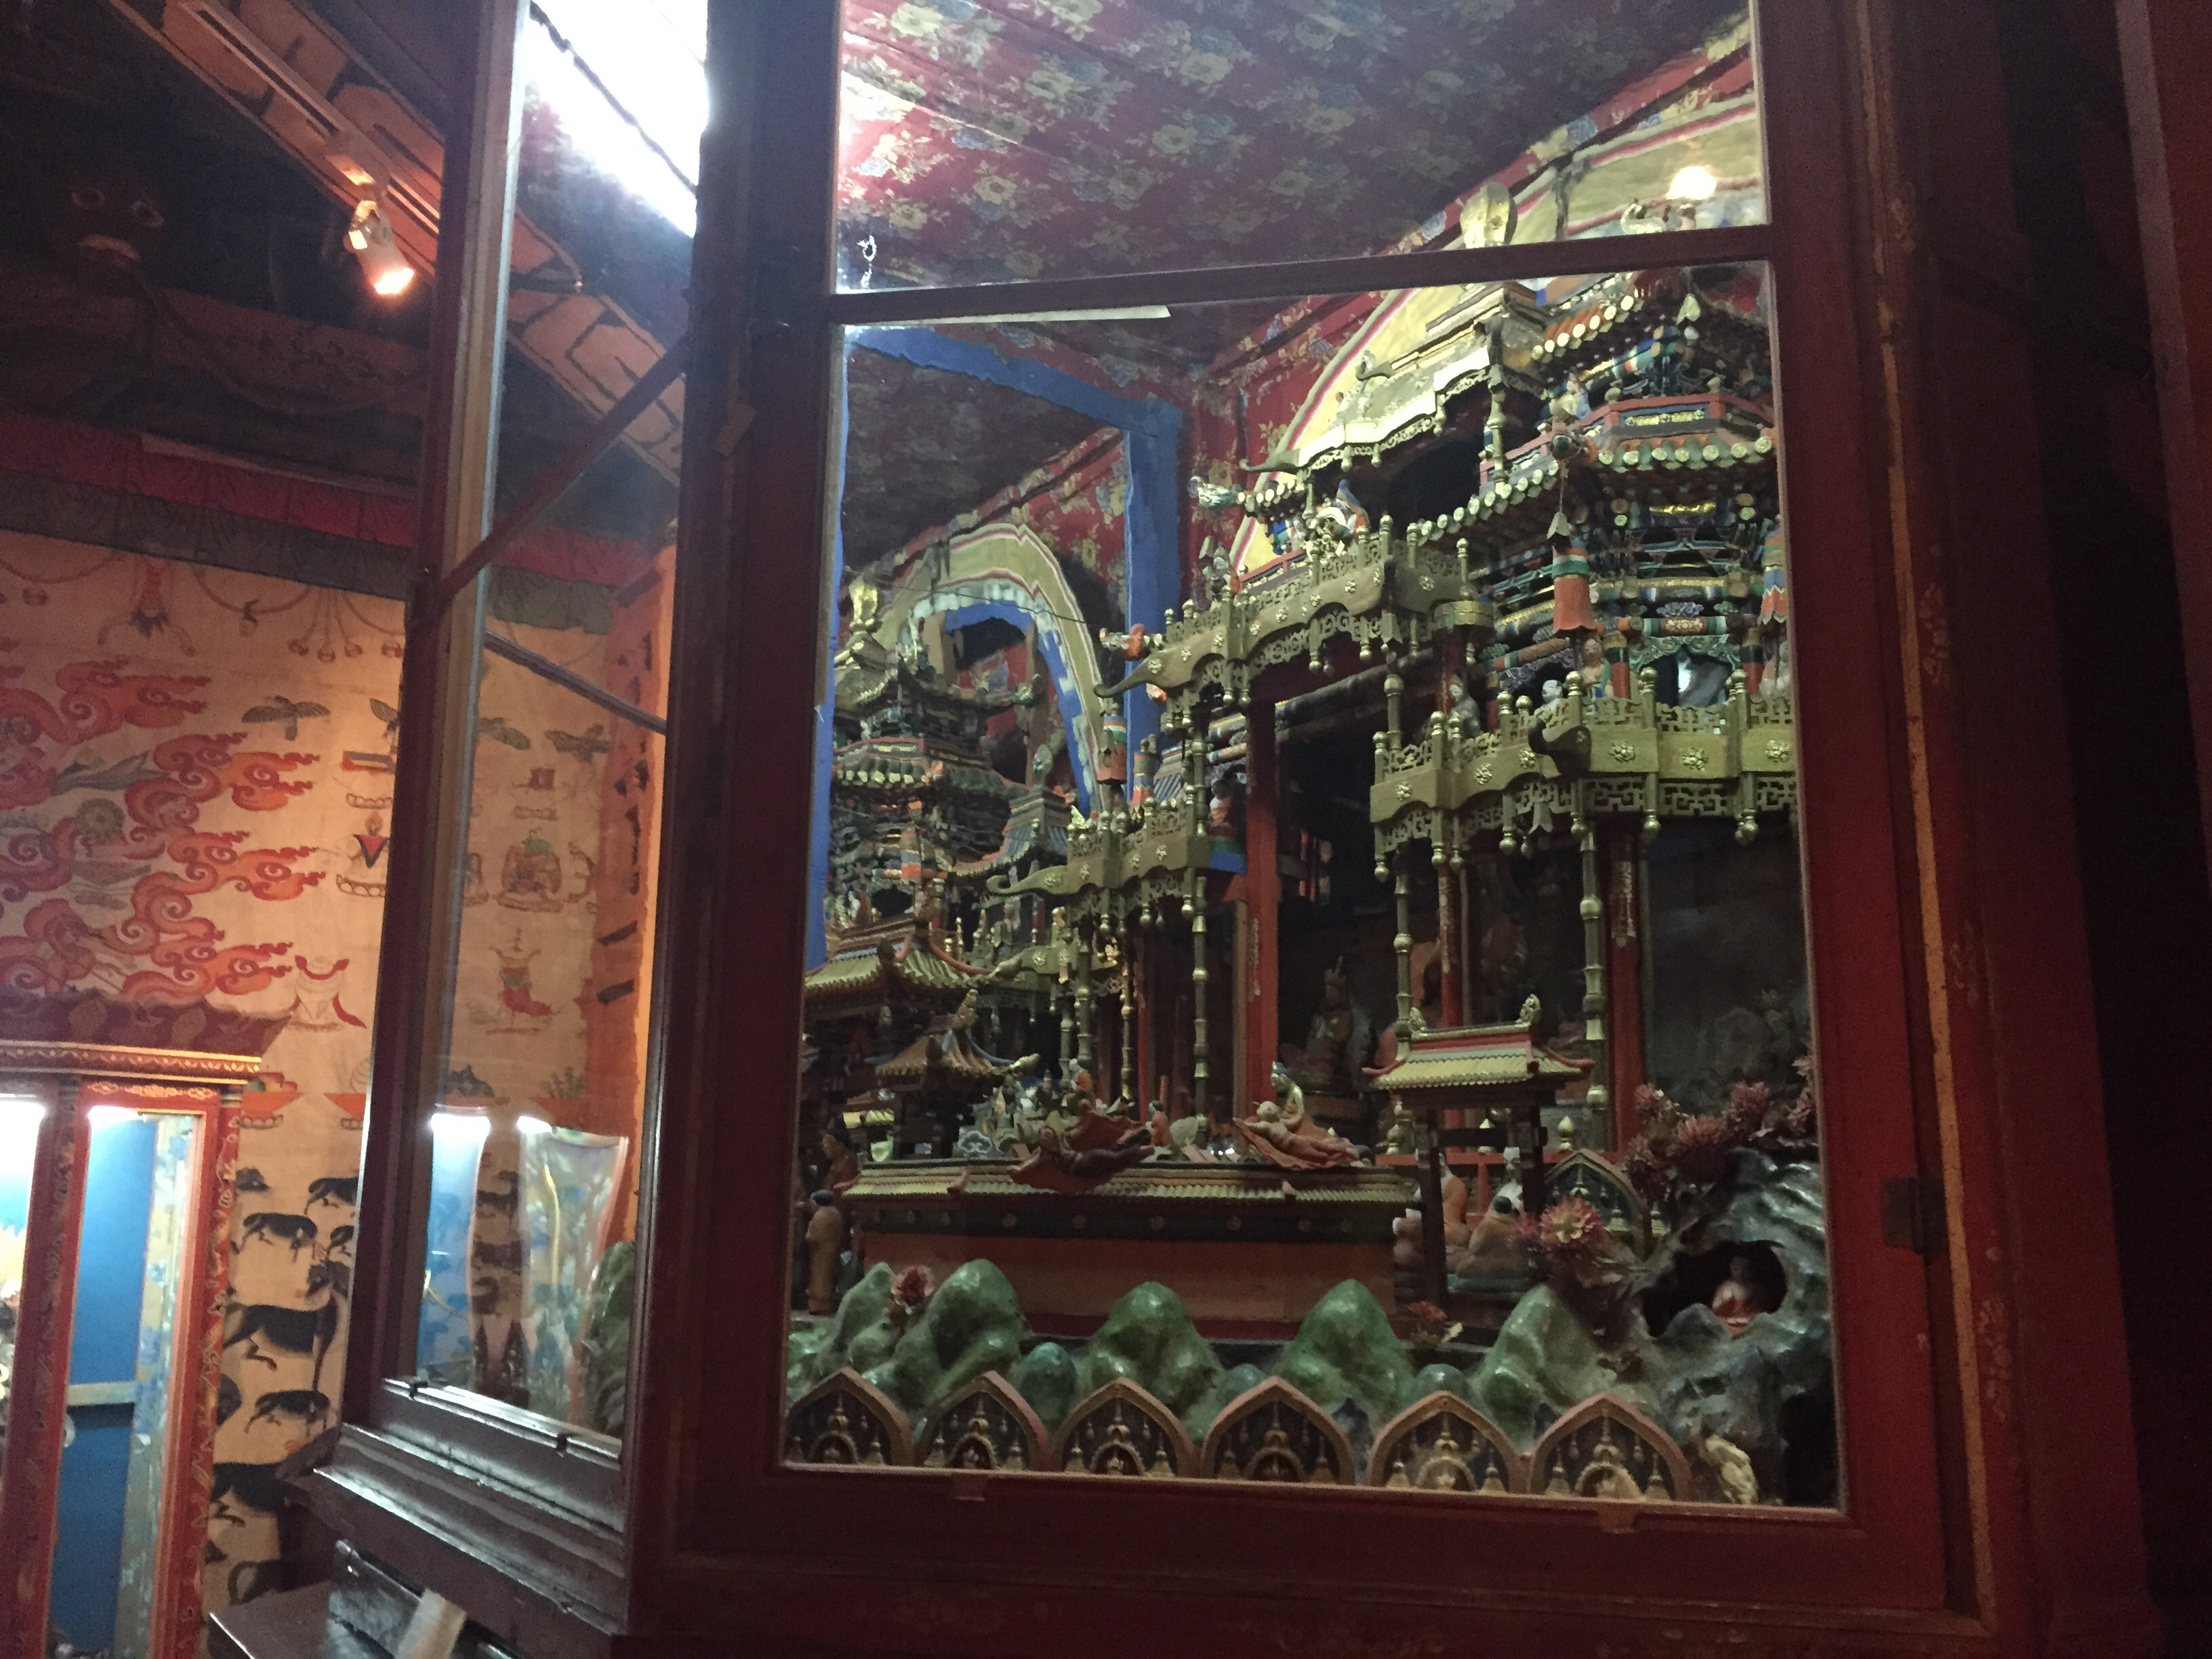 There were also two model temples that were elaborate and beautiful.